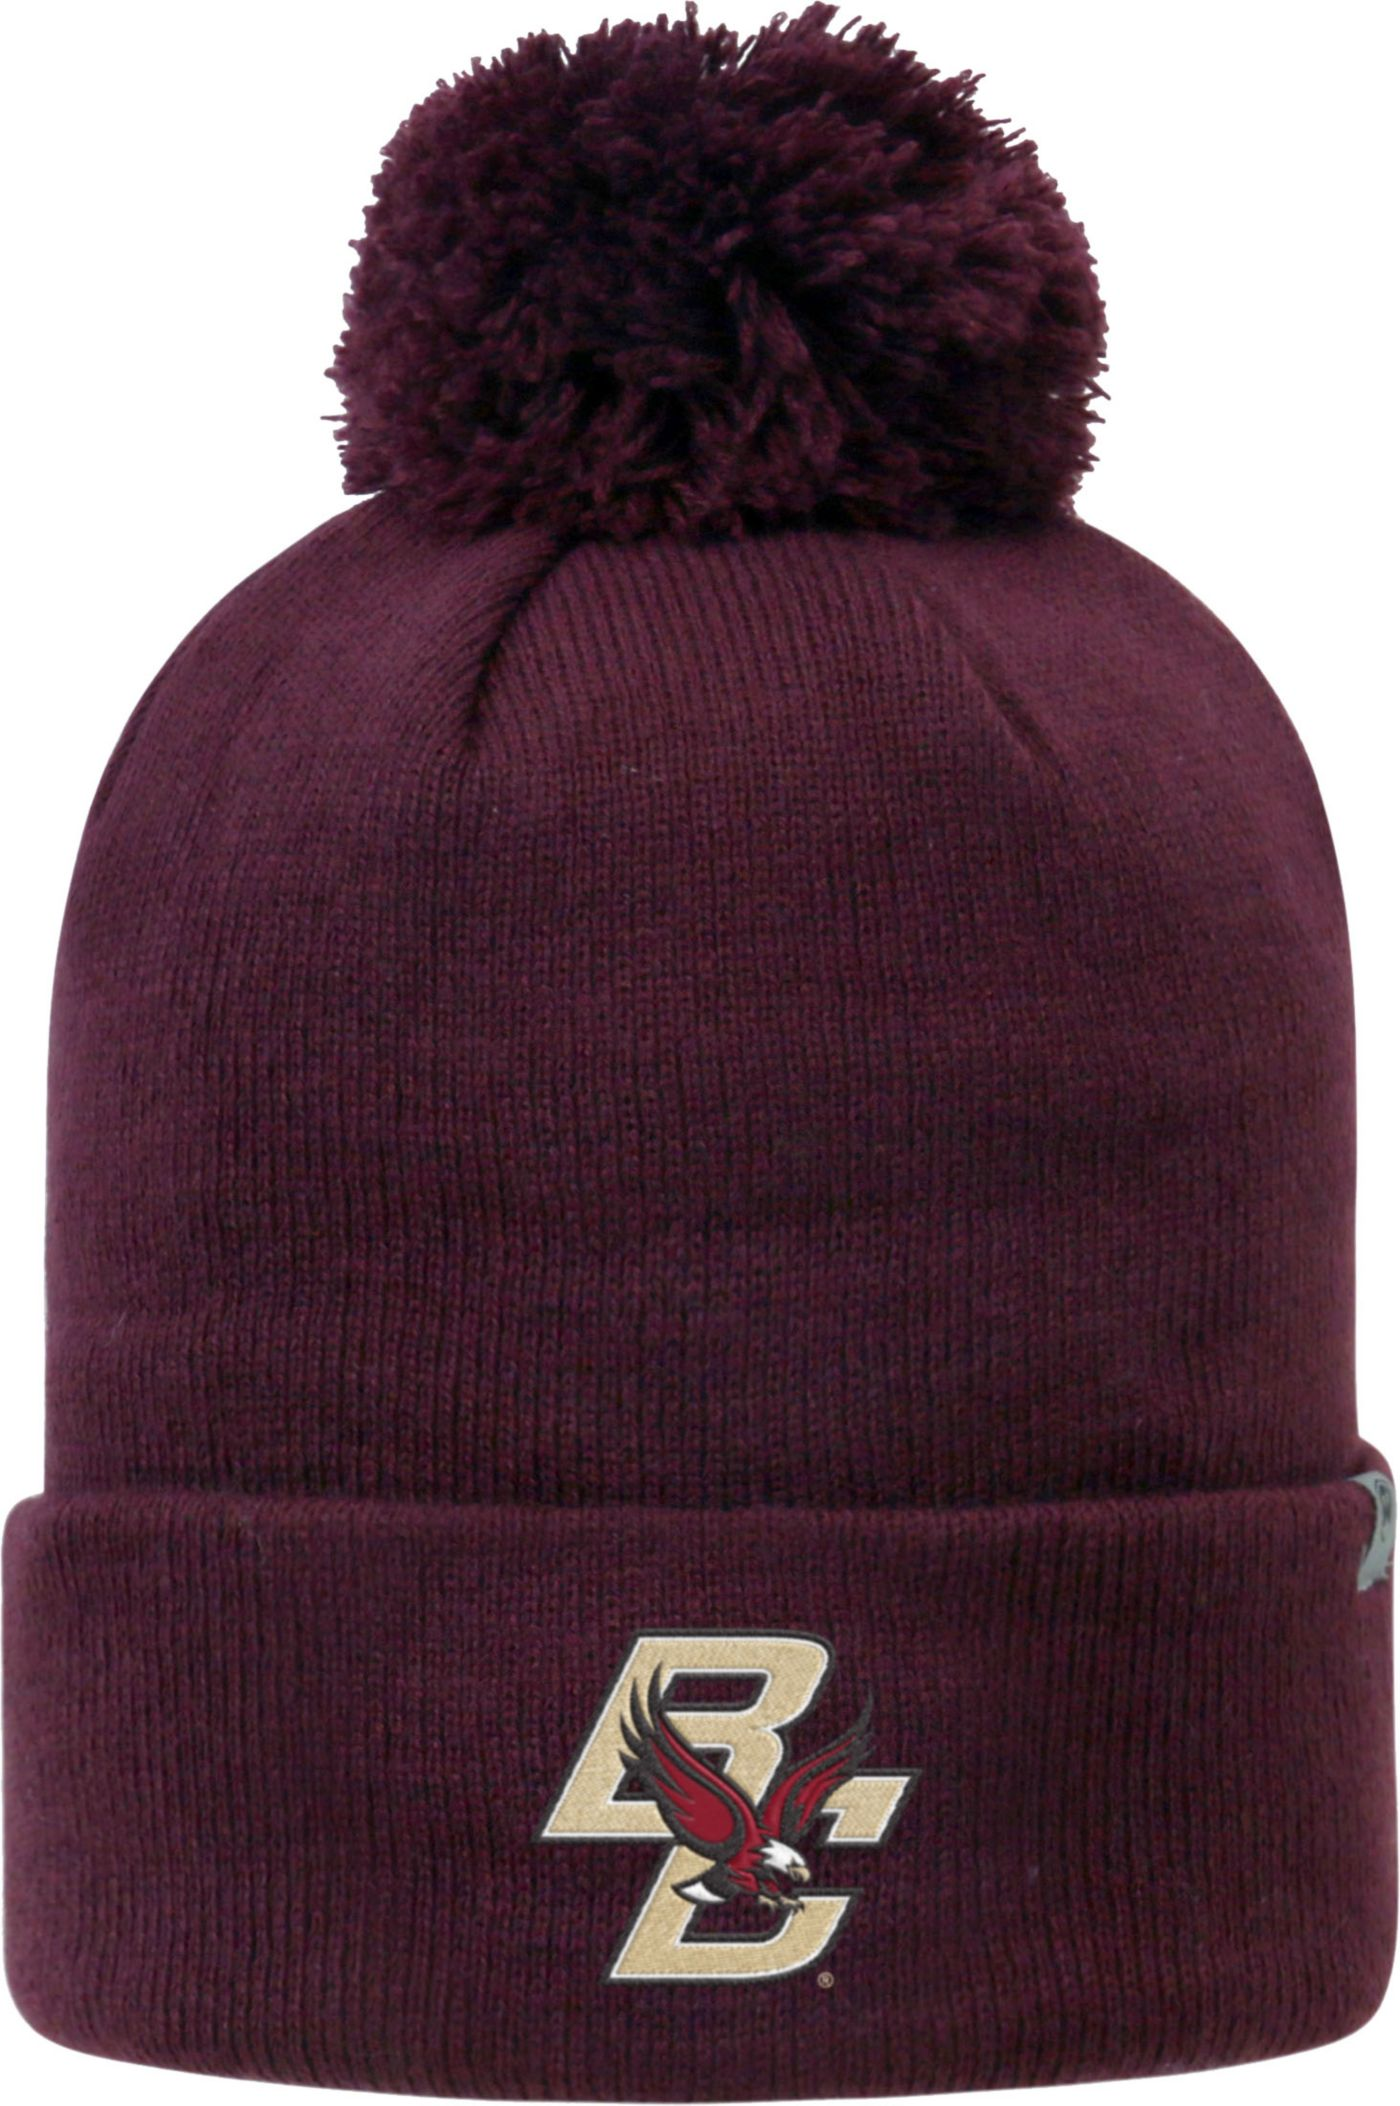 Top of the World Men's Boston College Eagles Maroon Pom Knit Beanie